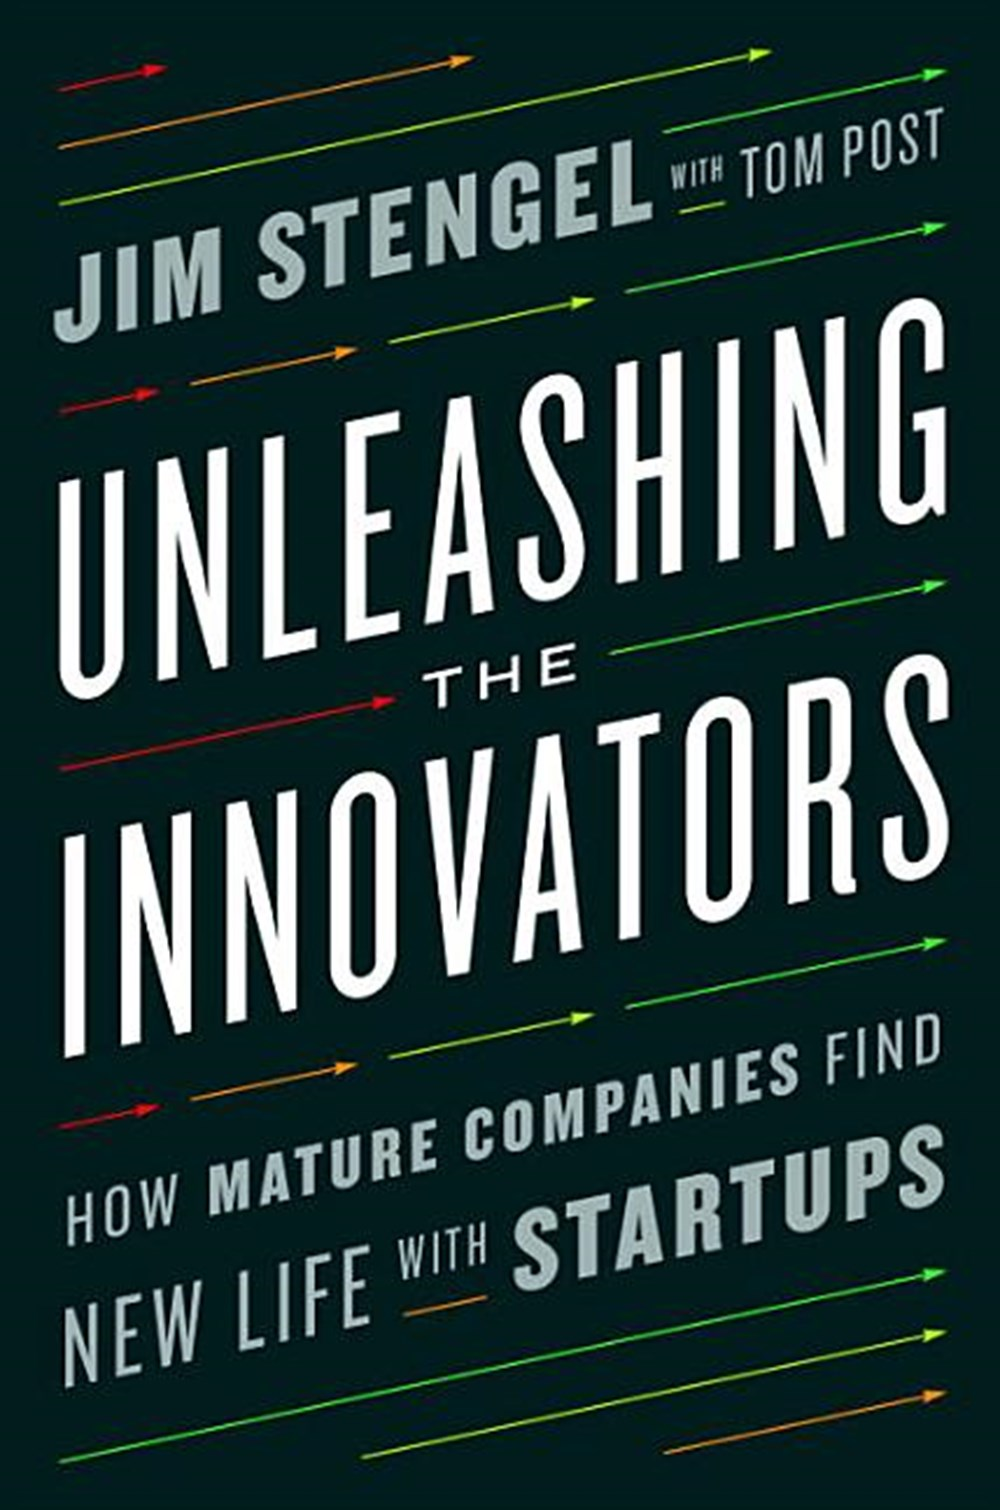 Unleashing the Innovators How Mature Companies Find New Life with Startups